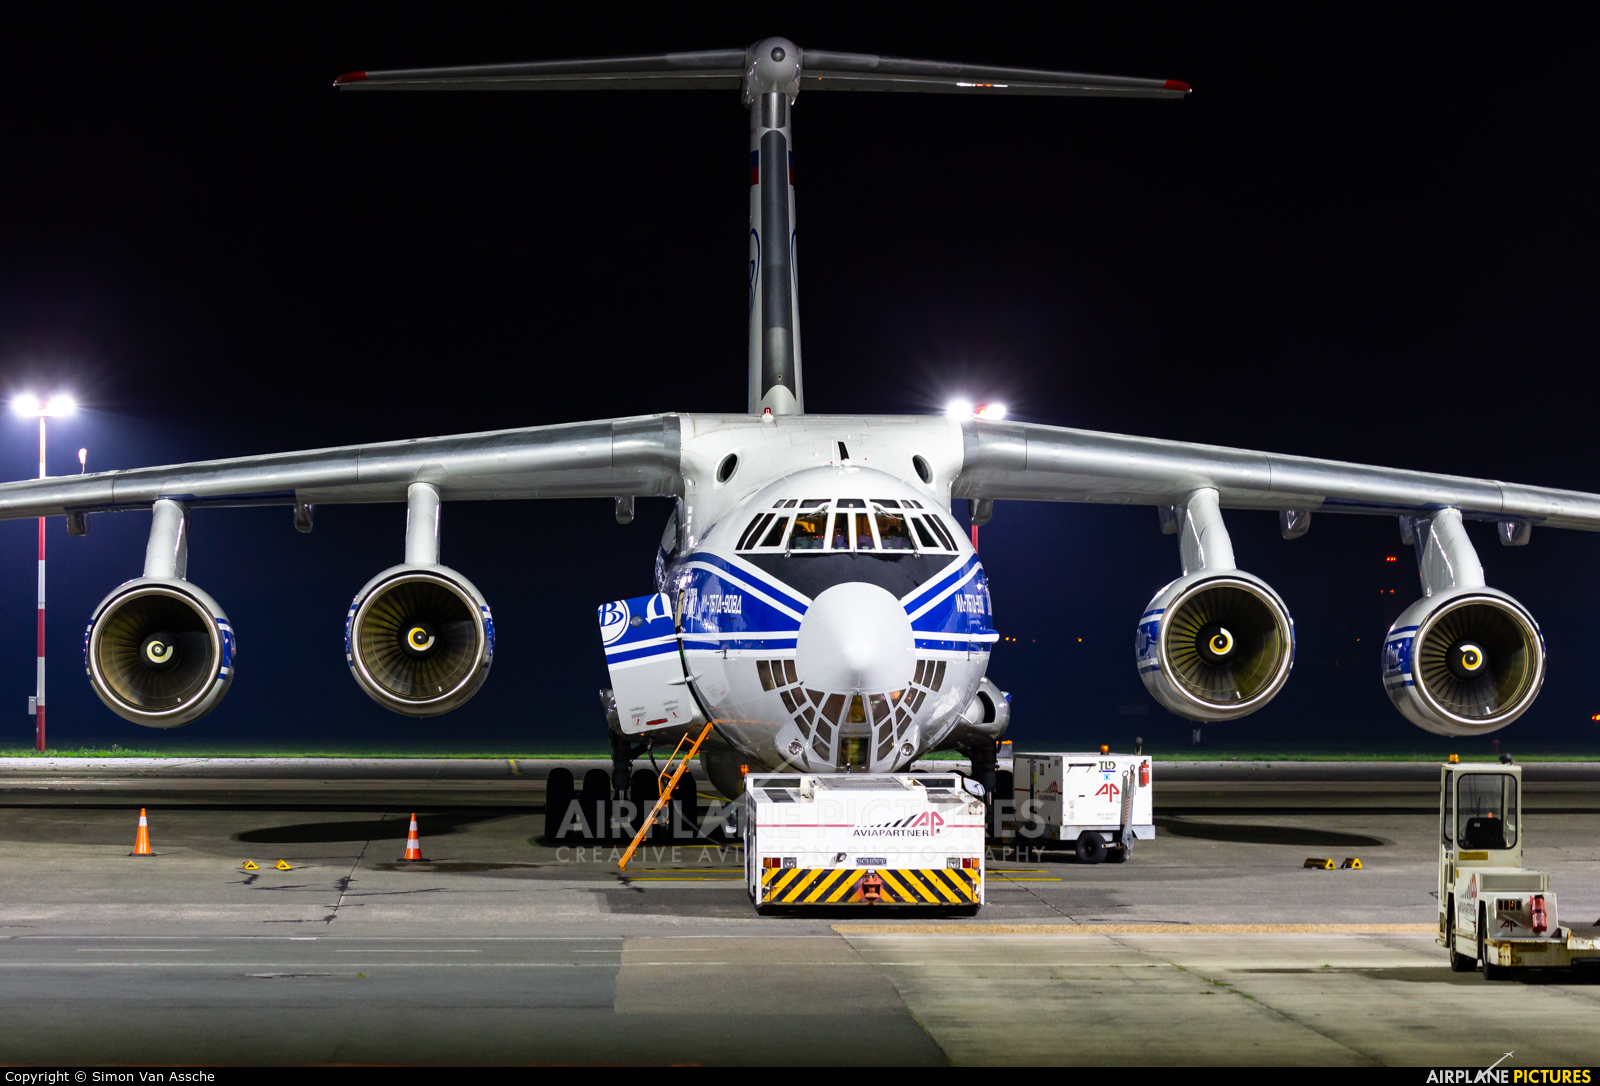 Volga Dnepr Airlines RA-76951 aircraft at Ostend / Bruges